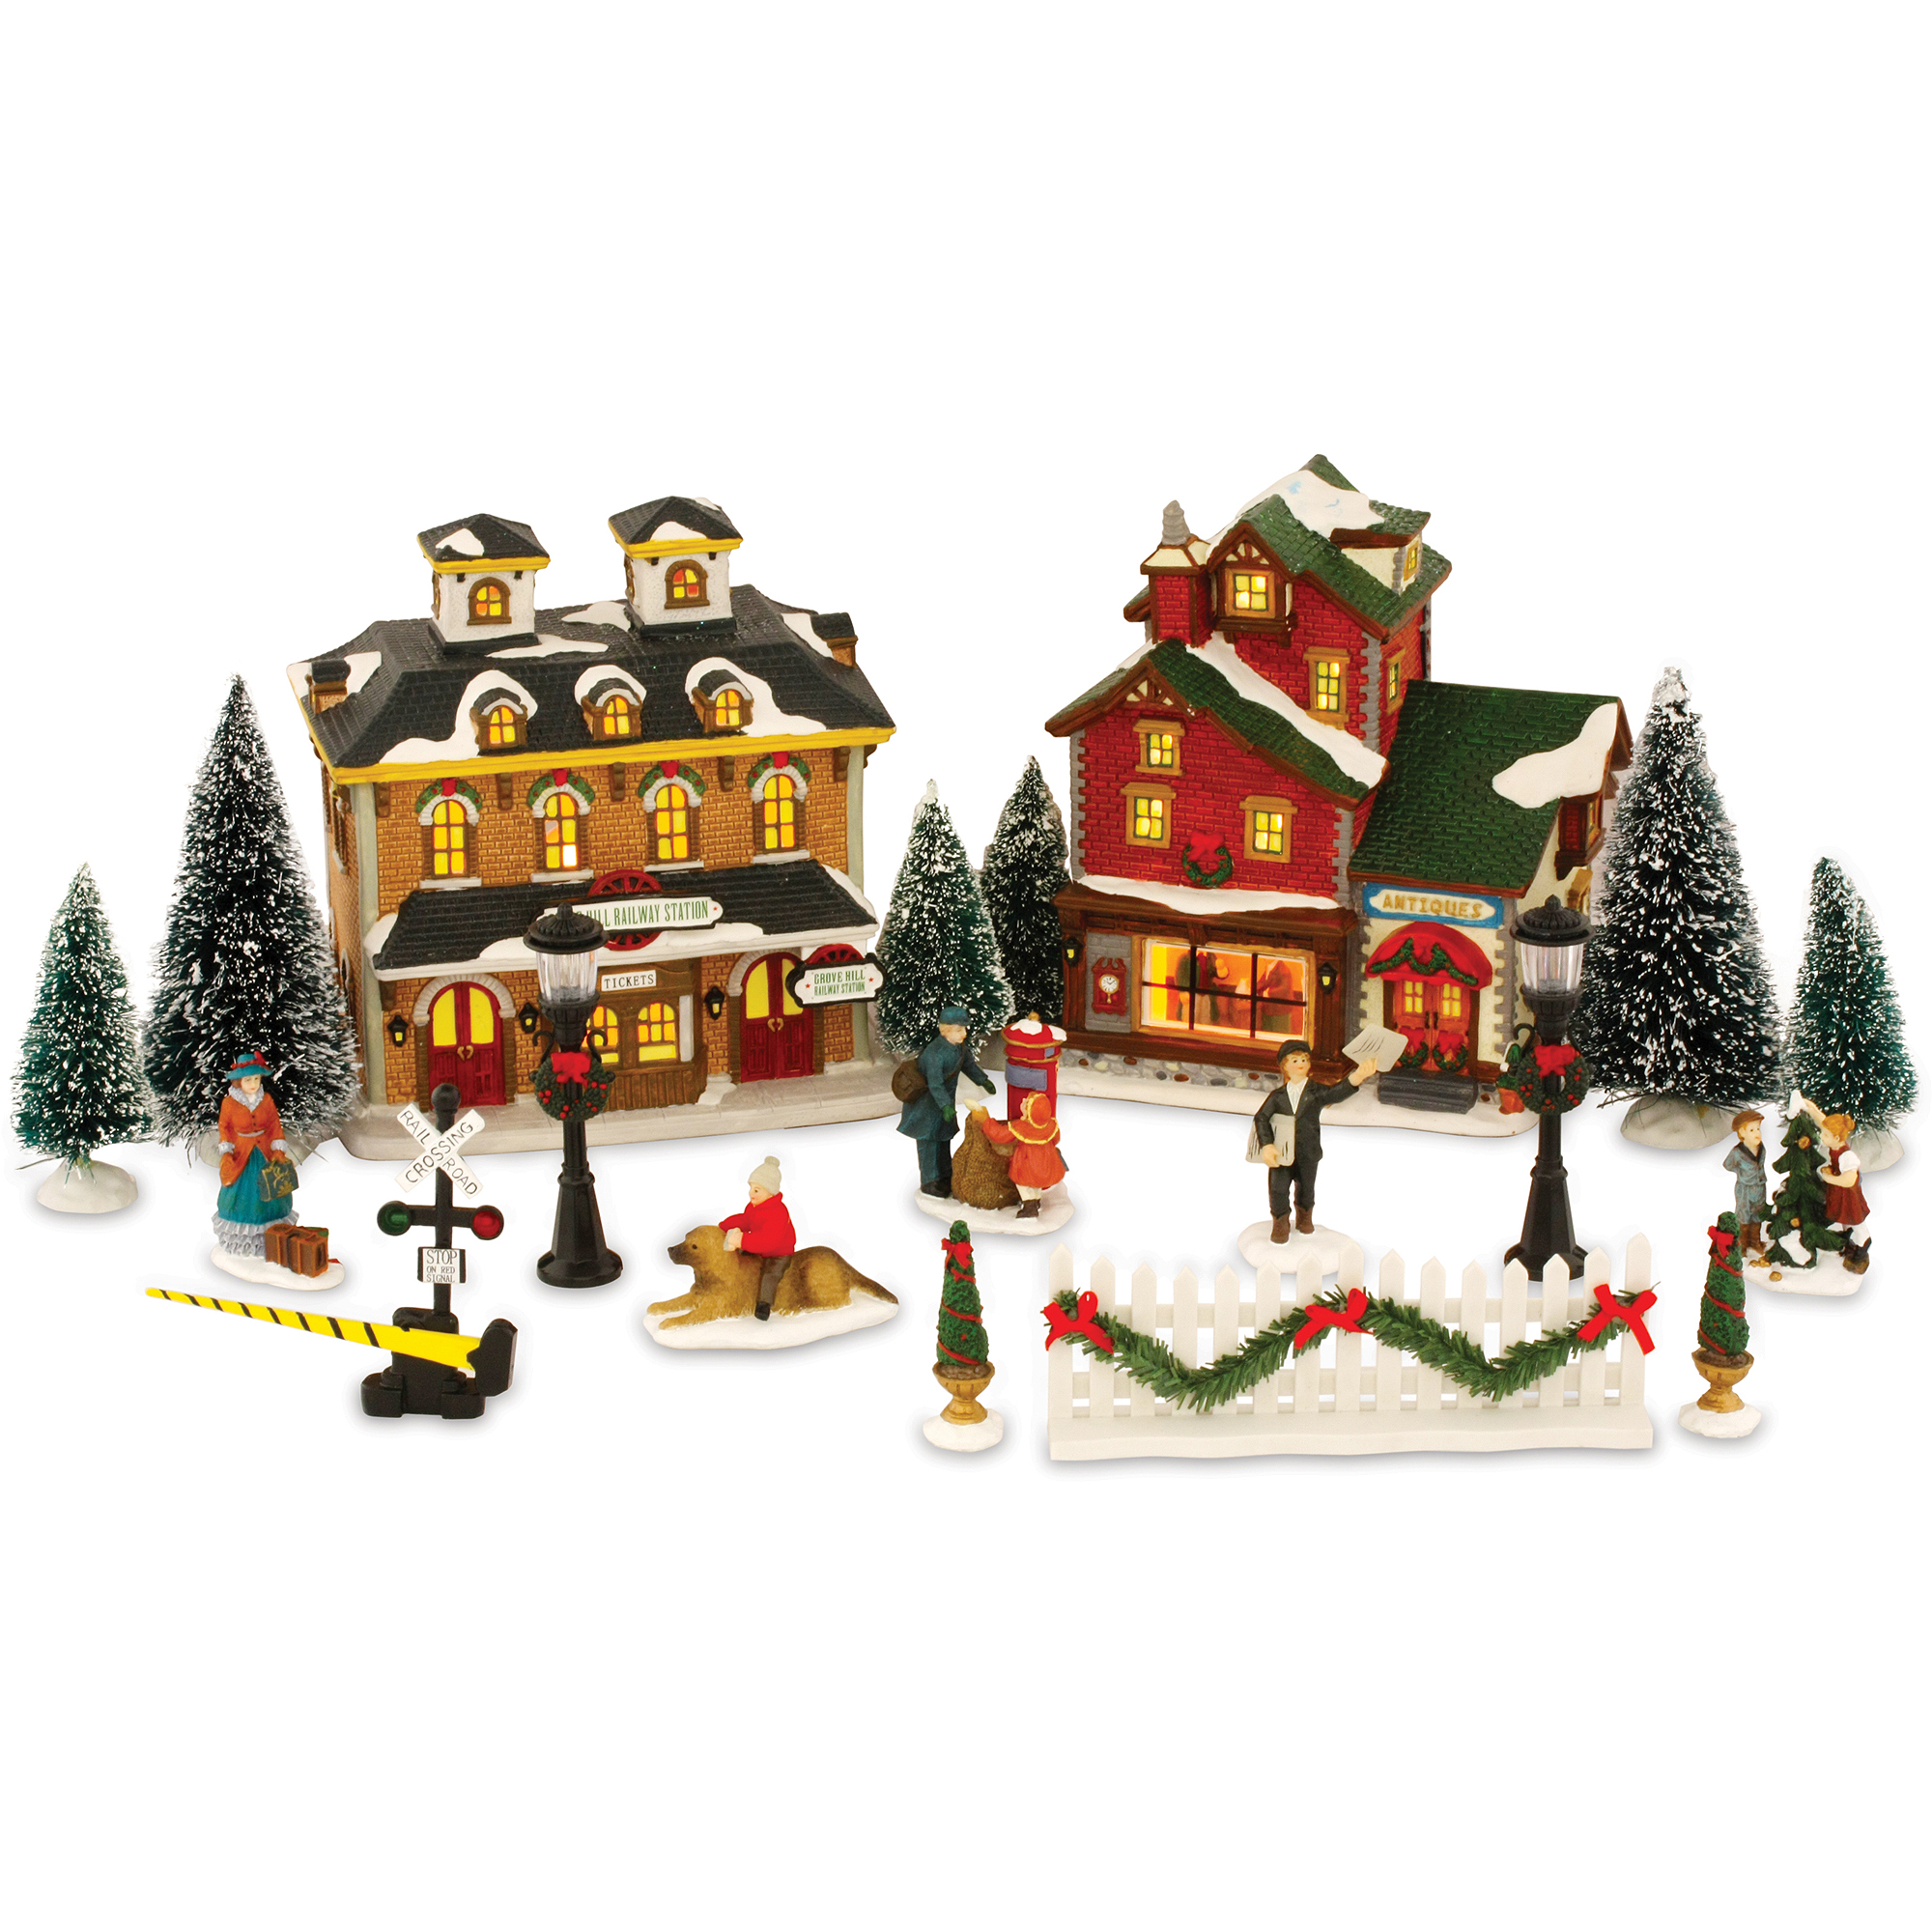 21-Piece Christmas Village Set - Walmart.com